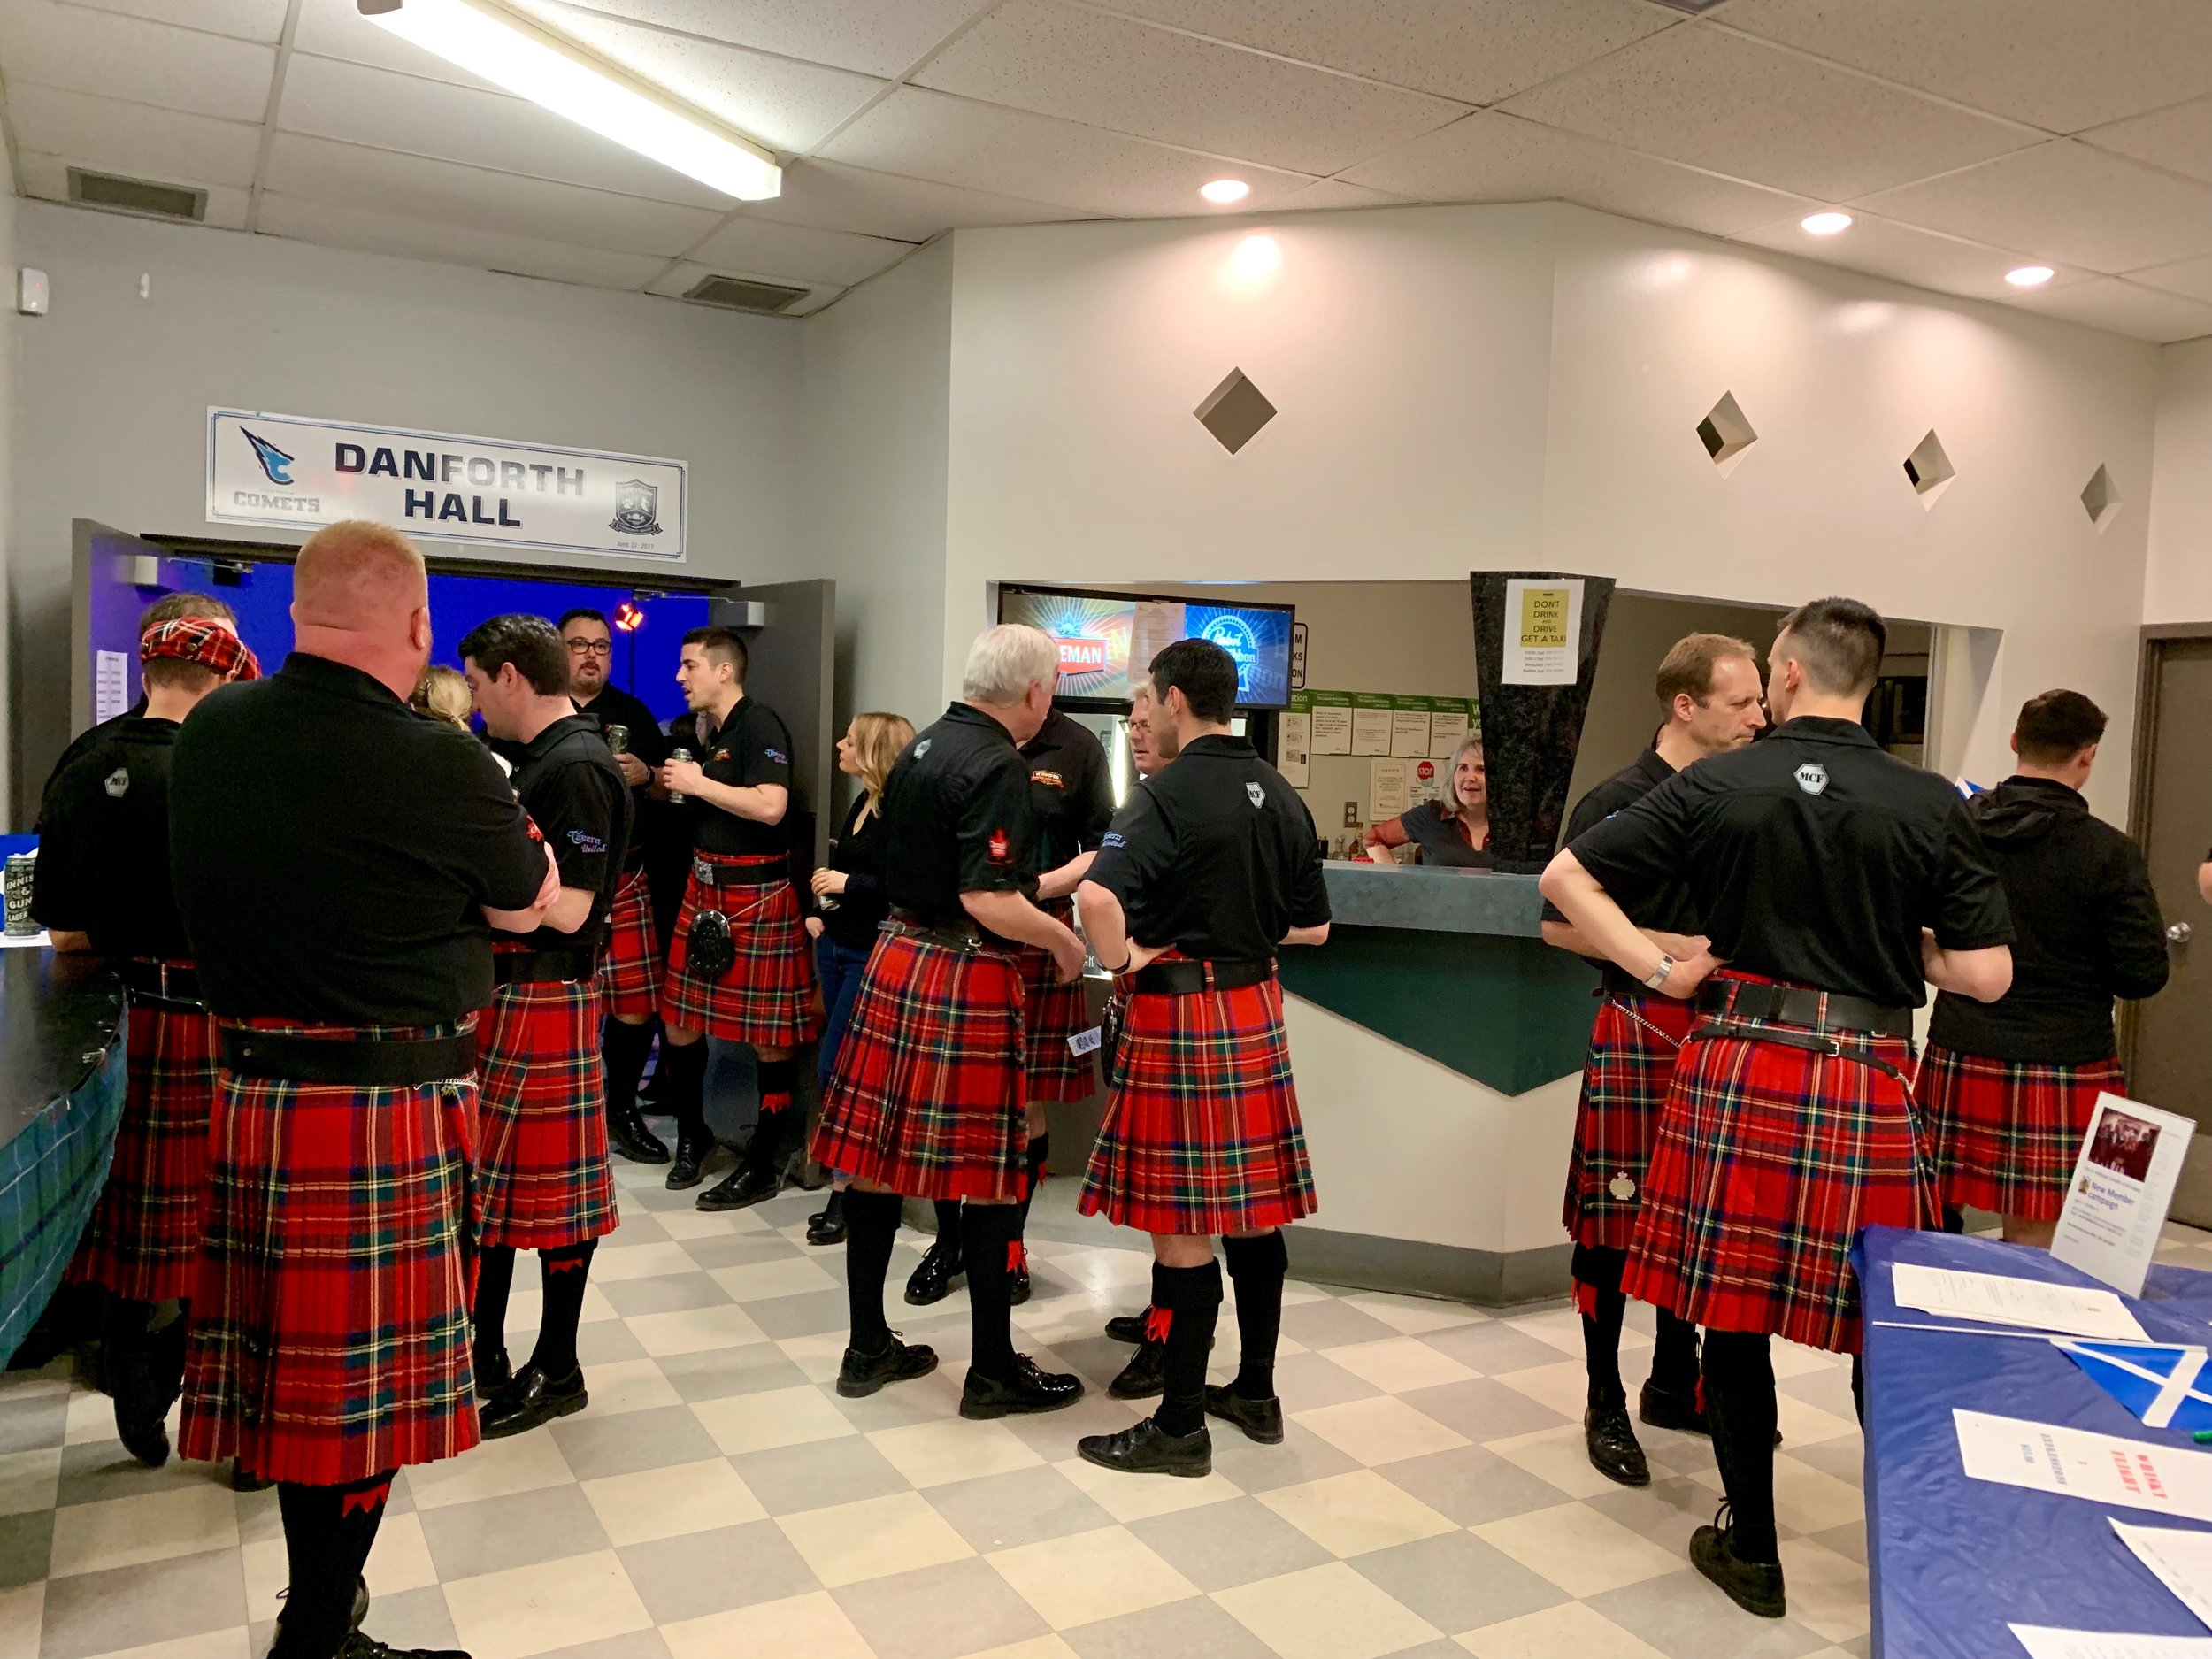 Winnipeg Police Pipe Band getting ready